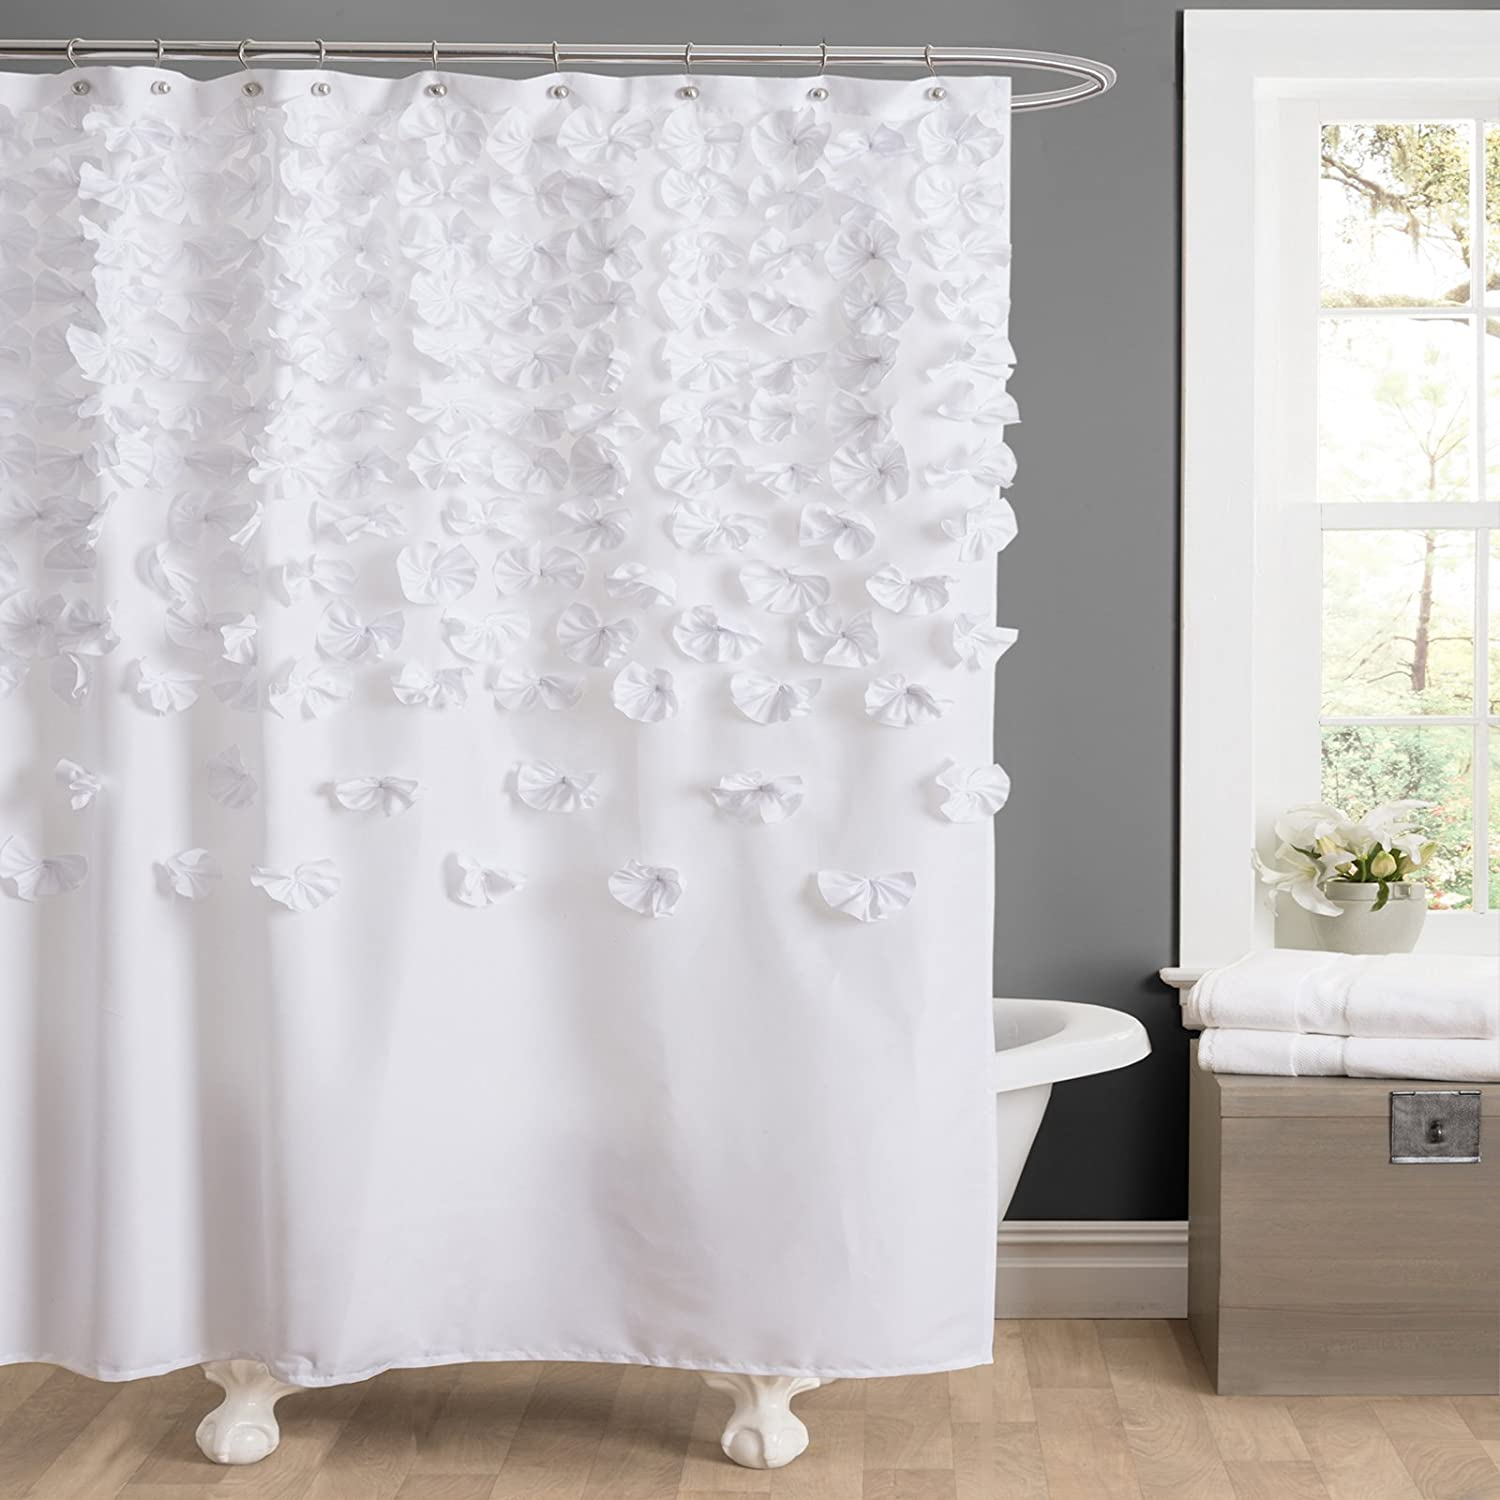 white shower curtain. Amazon.com: Lush Decor Lucia Shower Curtain, 72 By 72-Inch, White: Home \u0026 Kitchen White Curtain E